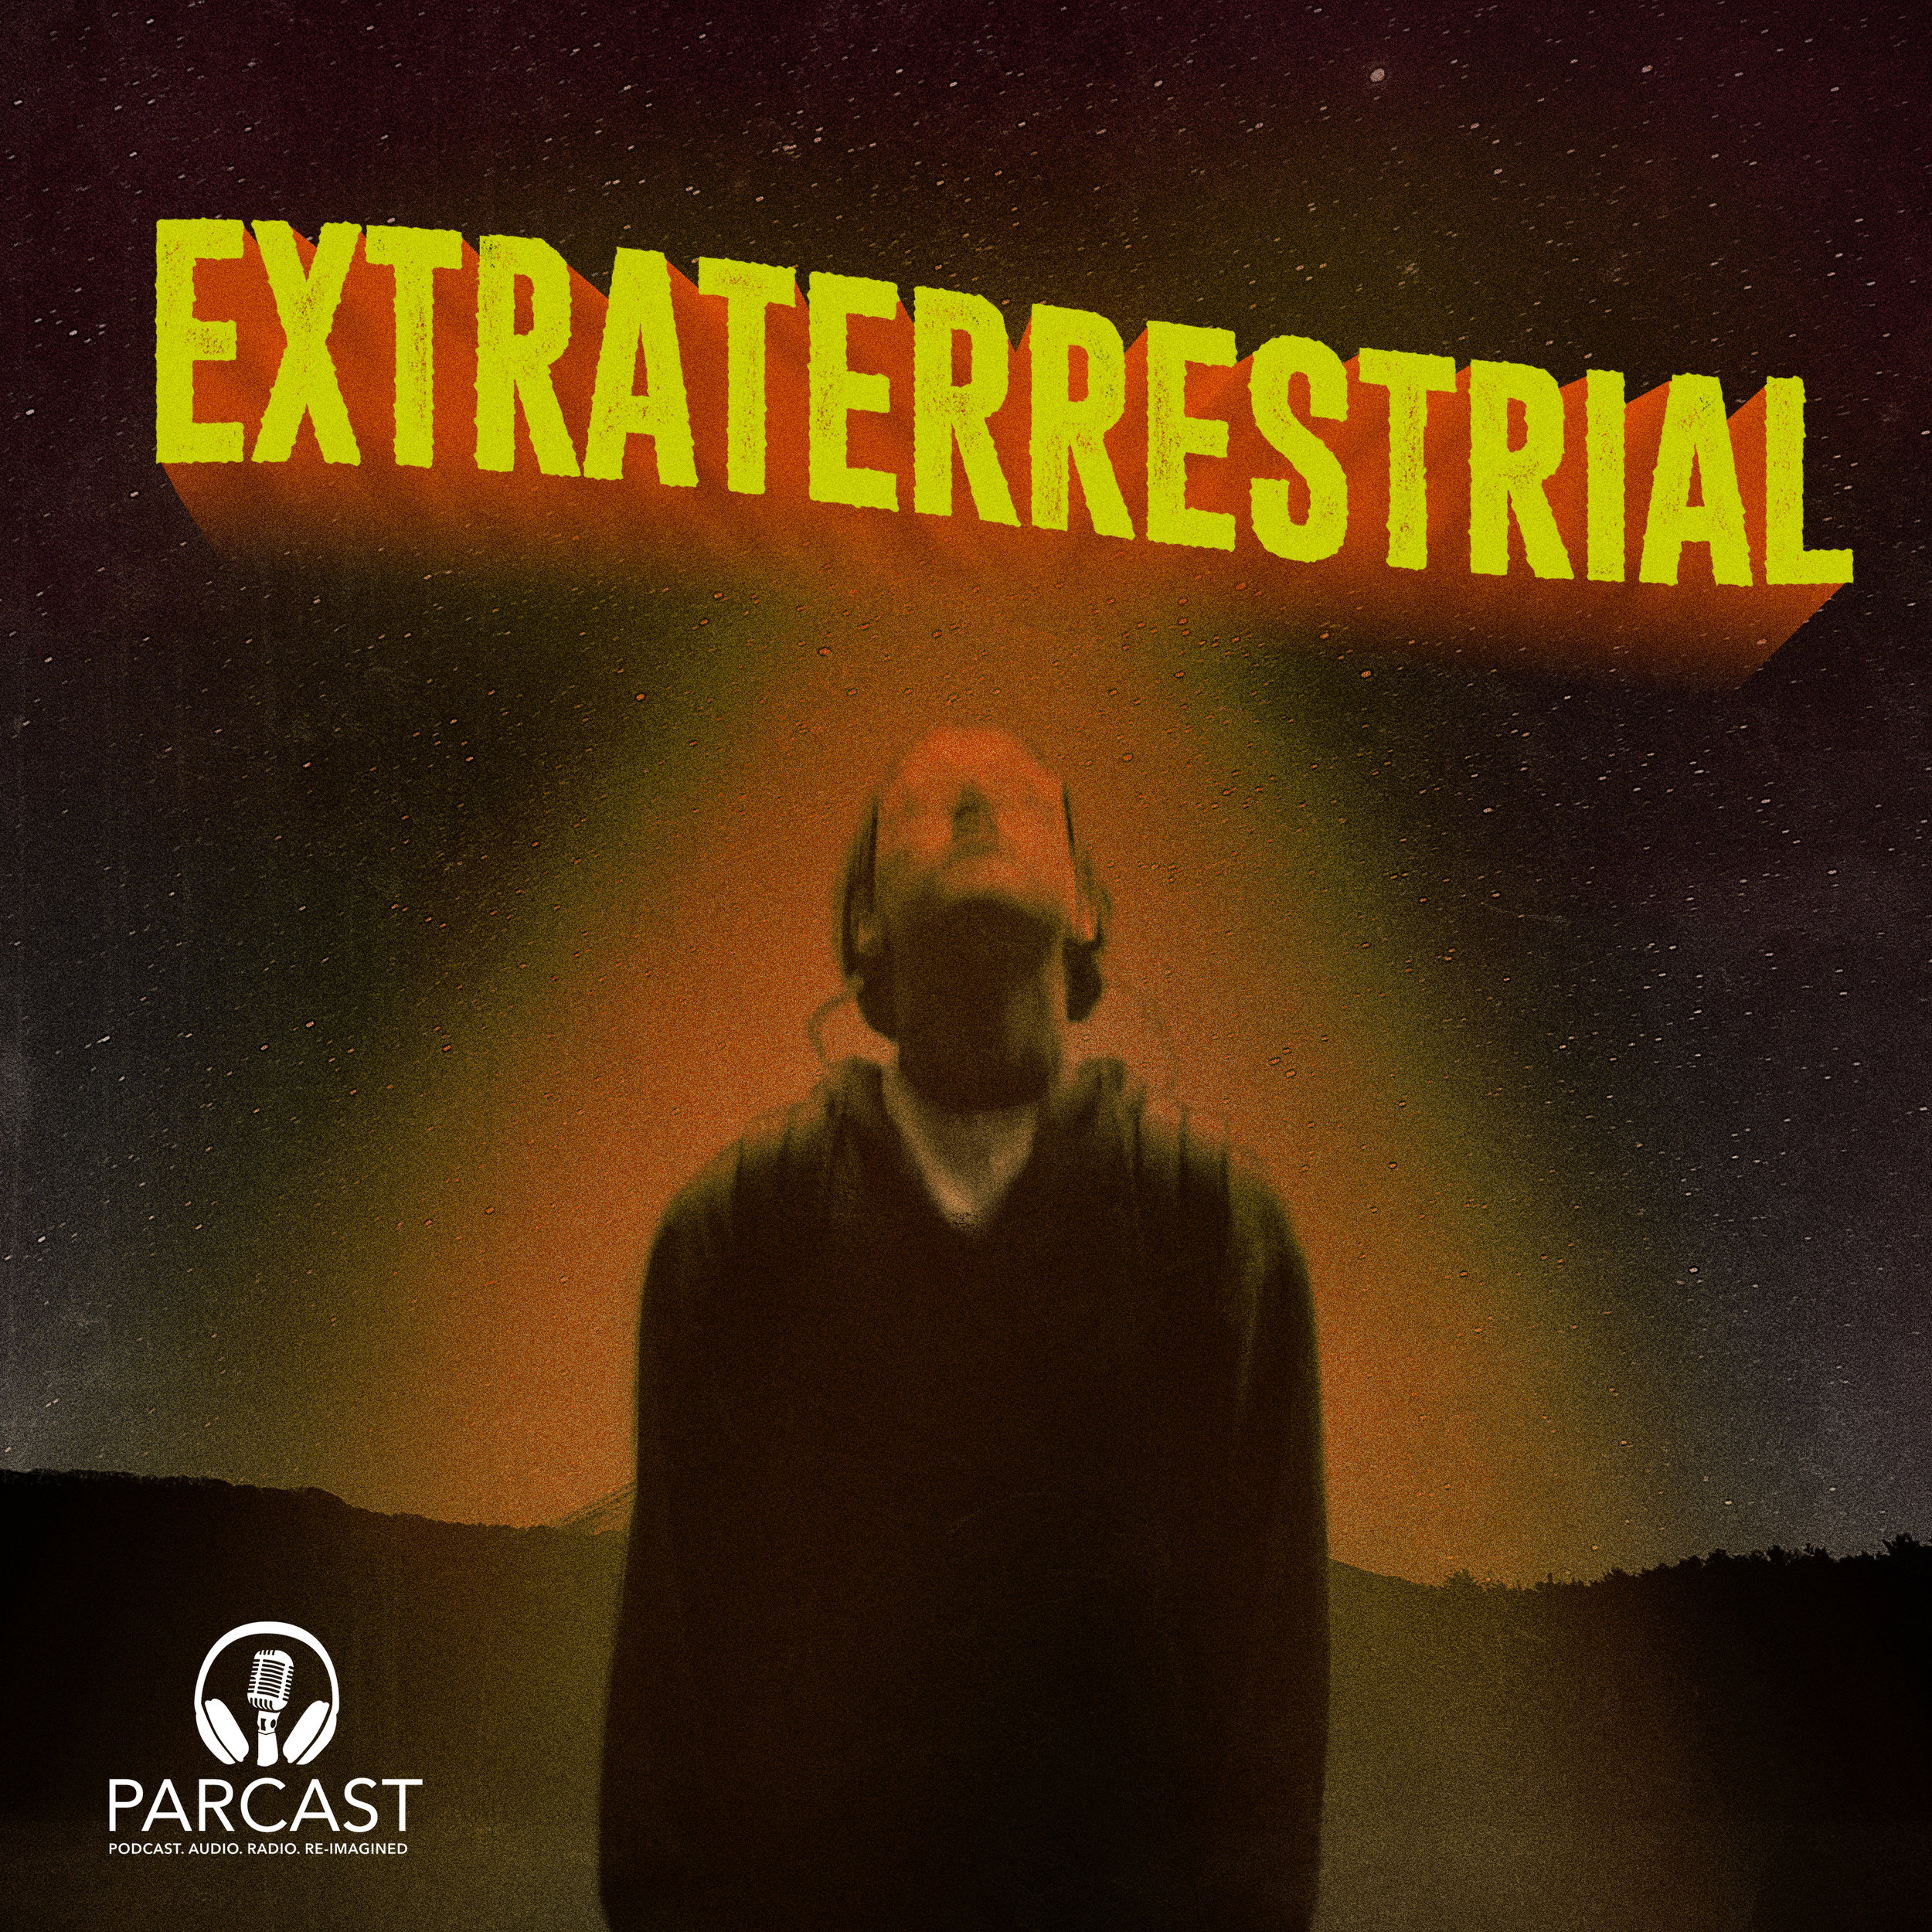 Extraterrestrial_Parcast_CoverArt_3000px (1).jpg